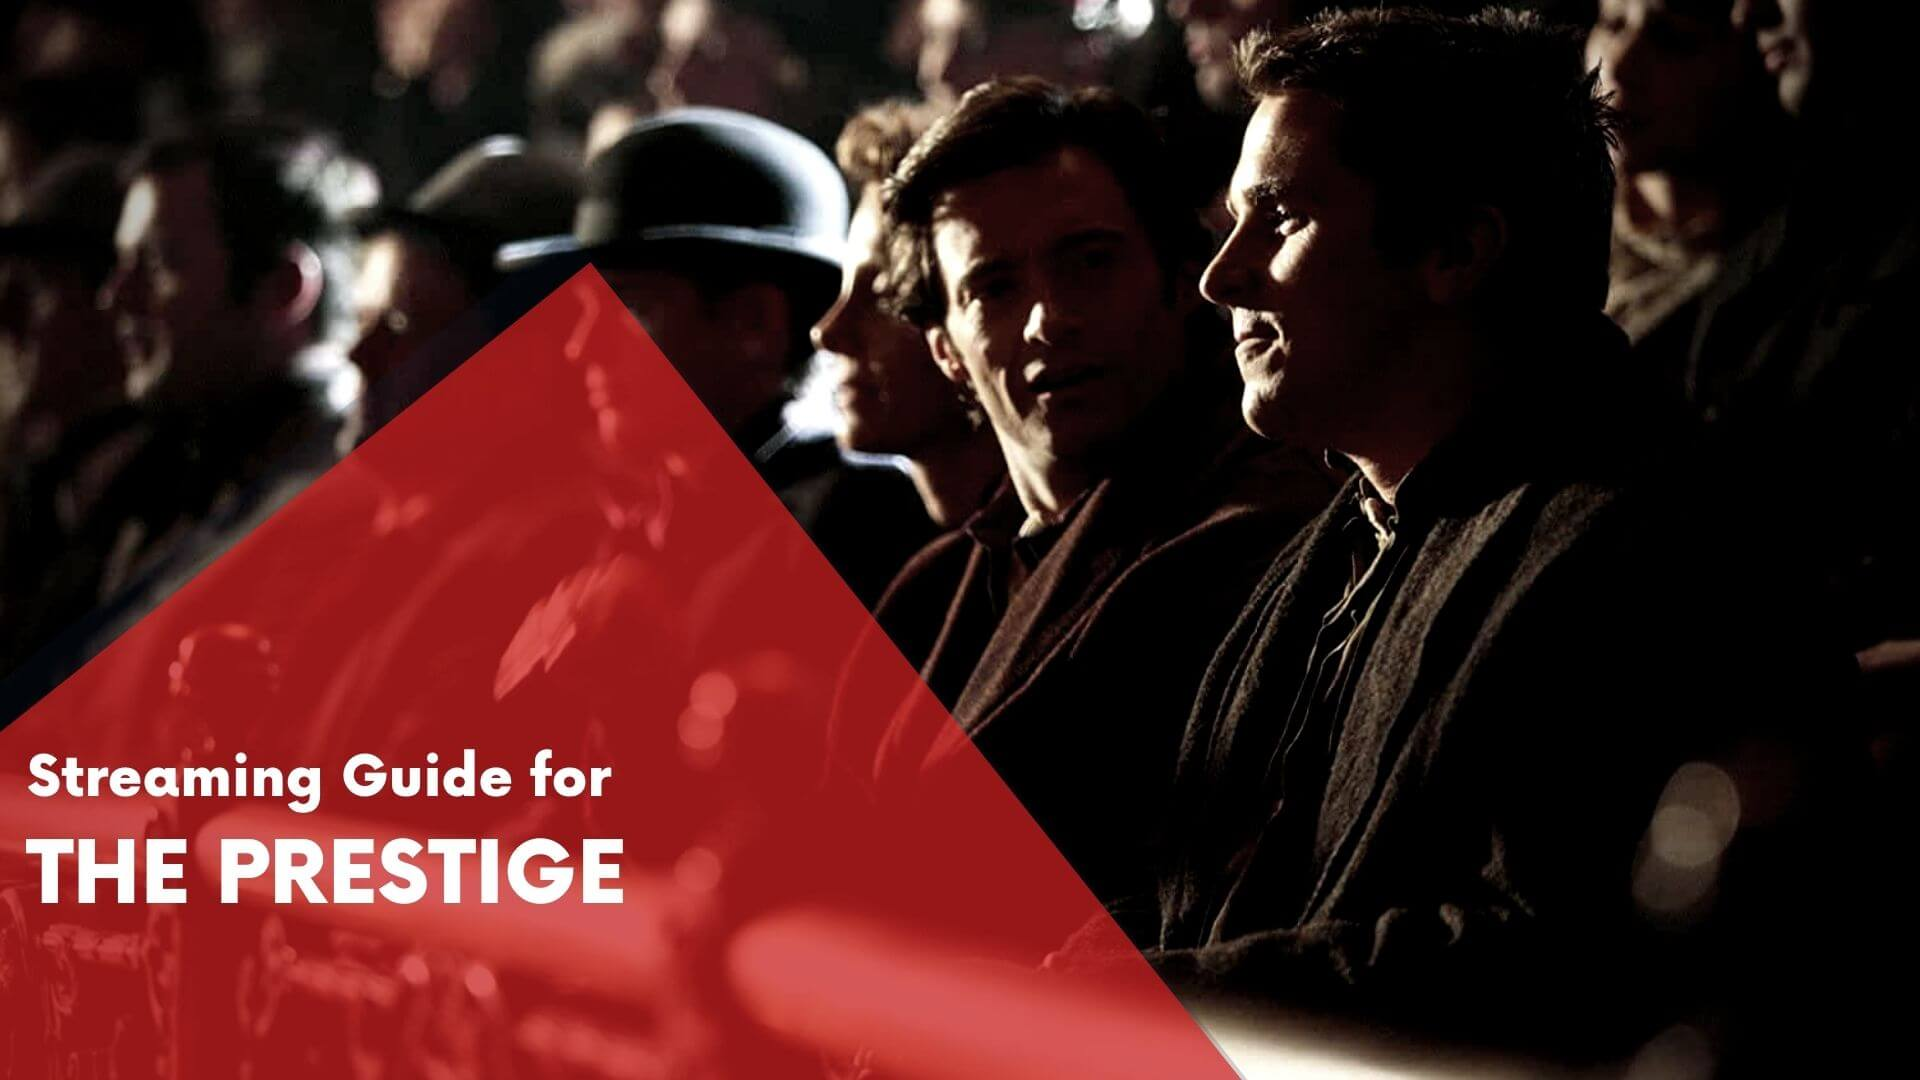 Answering if The Prestige can be watched online on Hulu